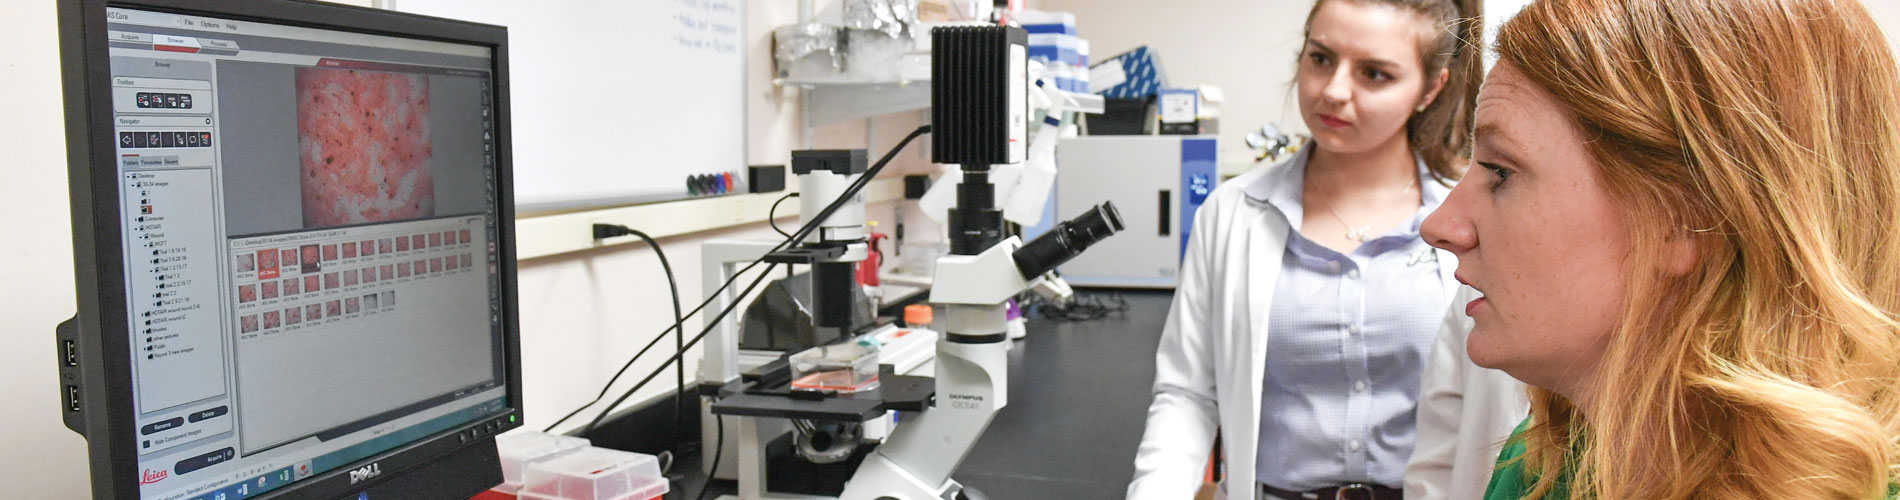 Photo of Cancer Research at FGCU Classroom